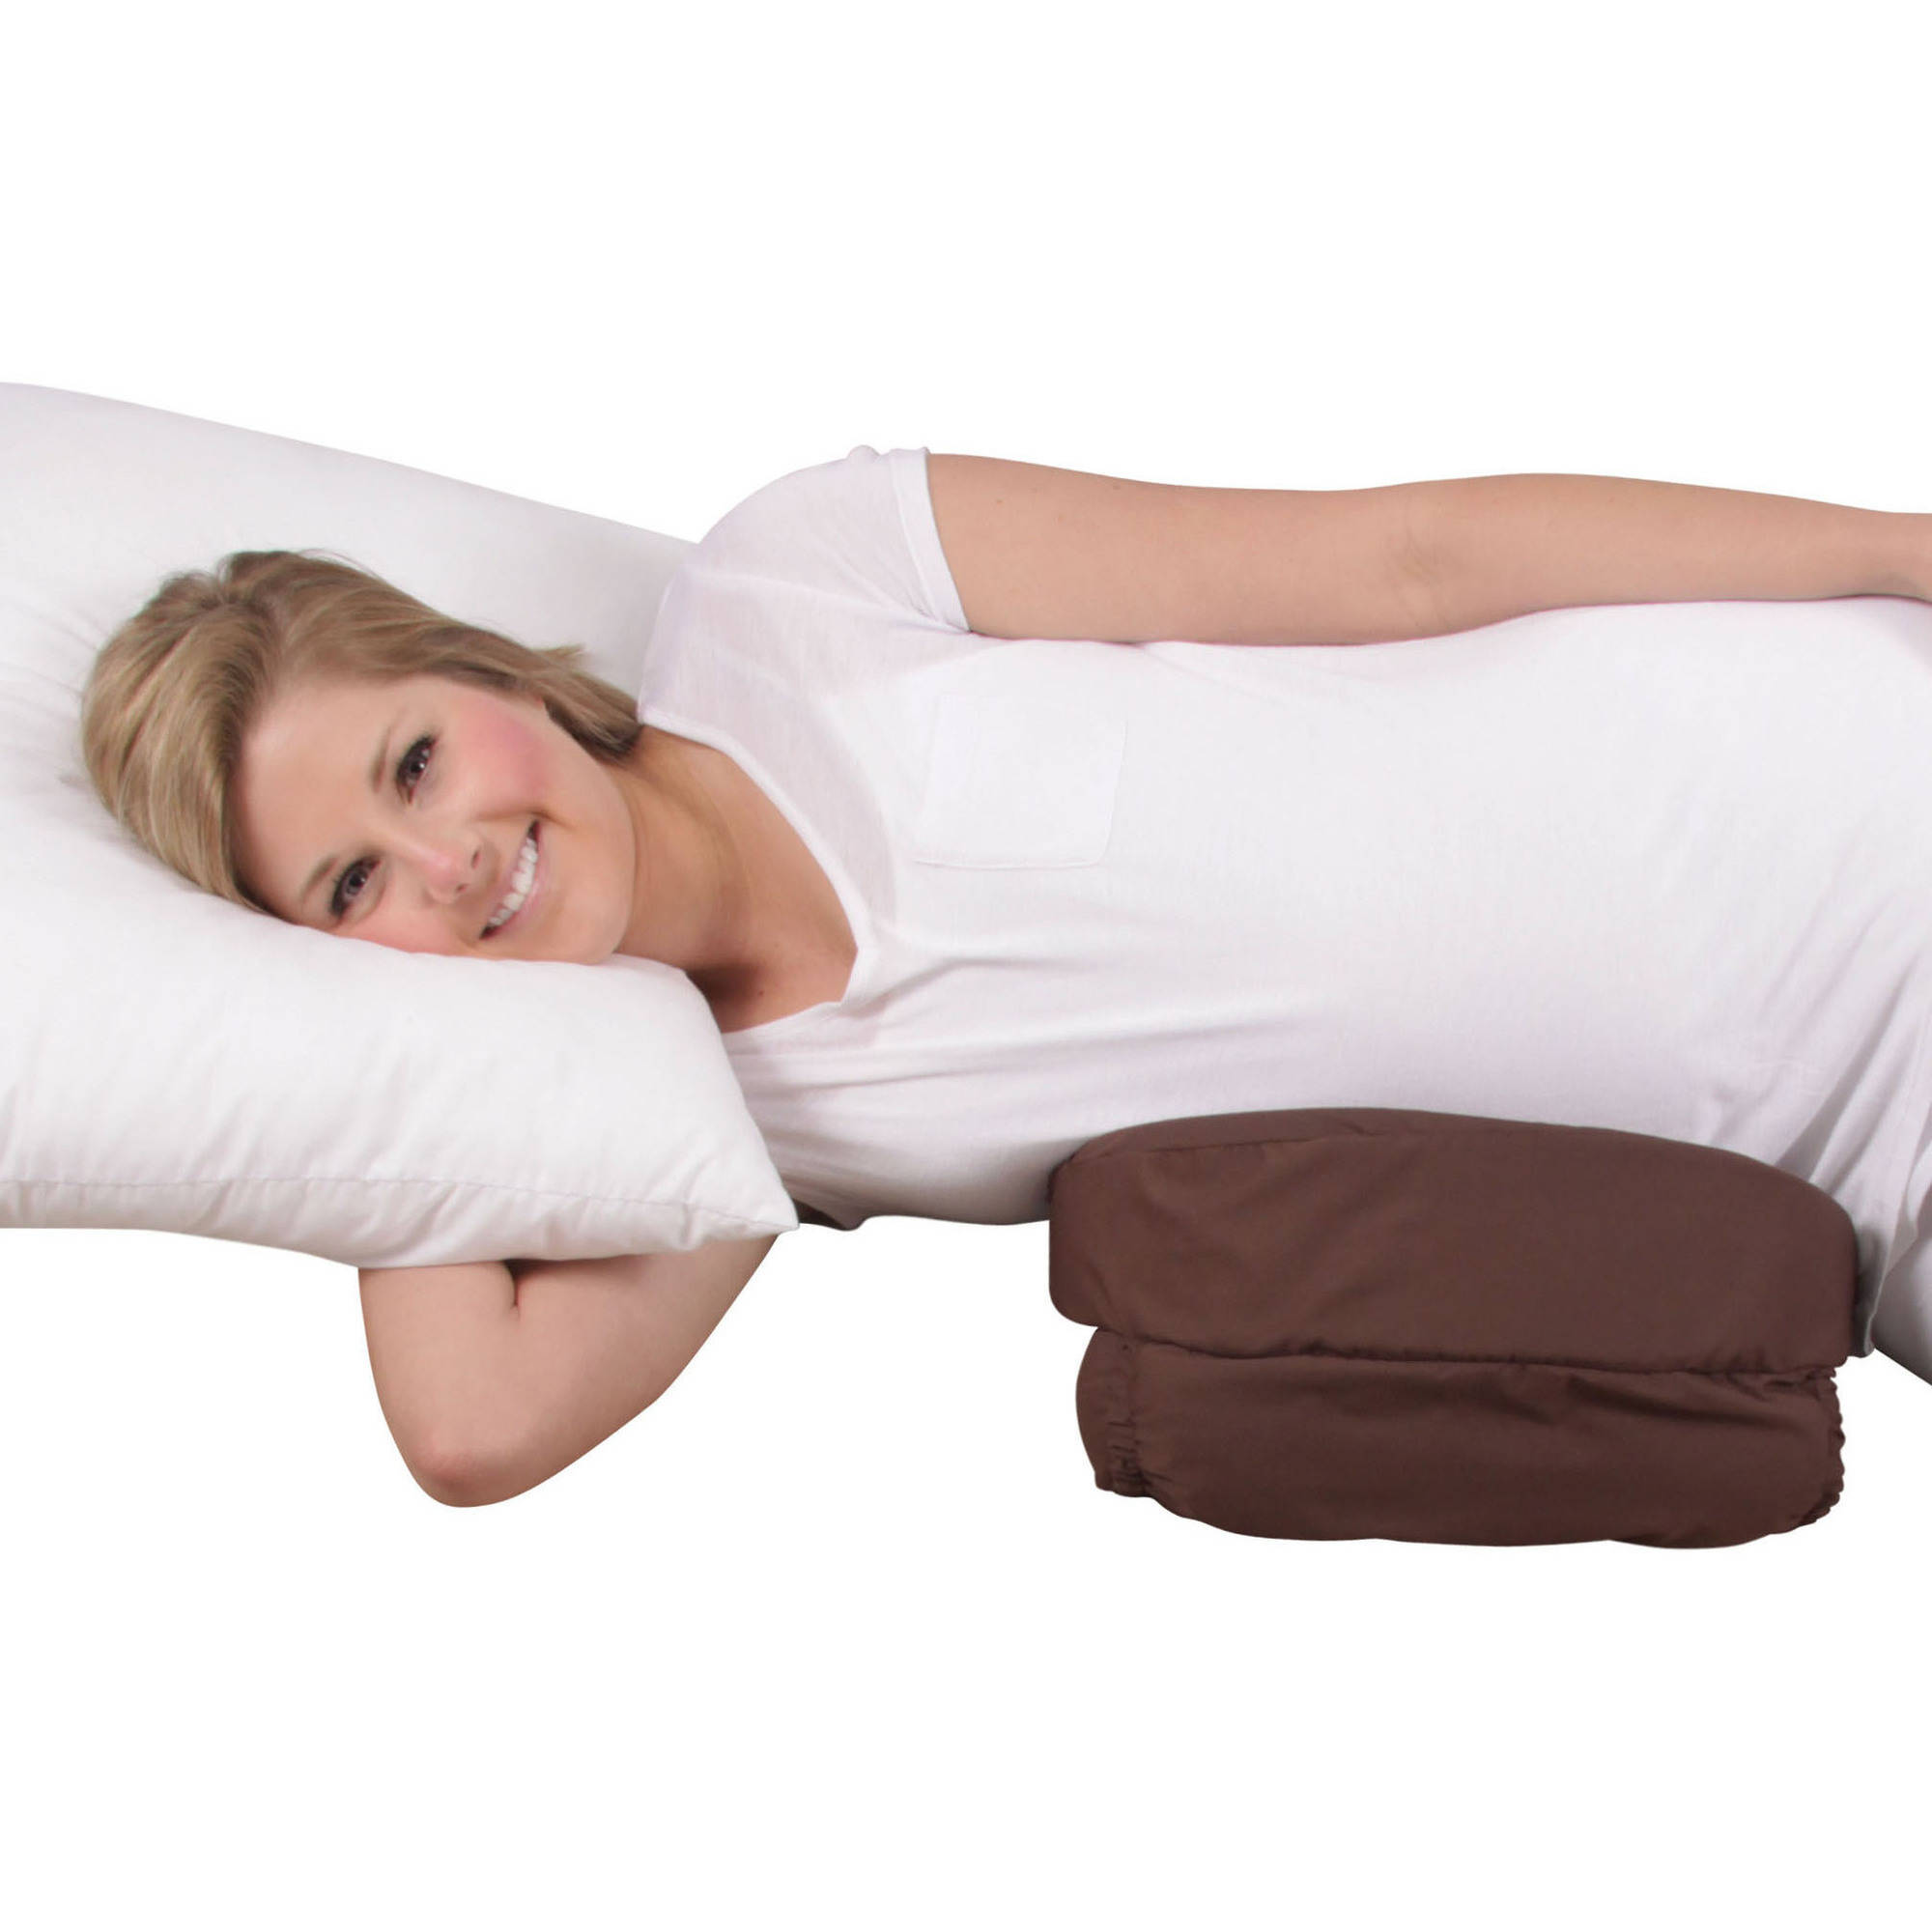 Leachco Belly Buddy Adjustable Pregnancy Wedge, Brown